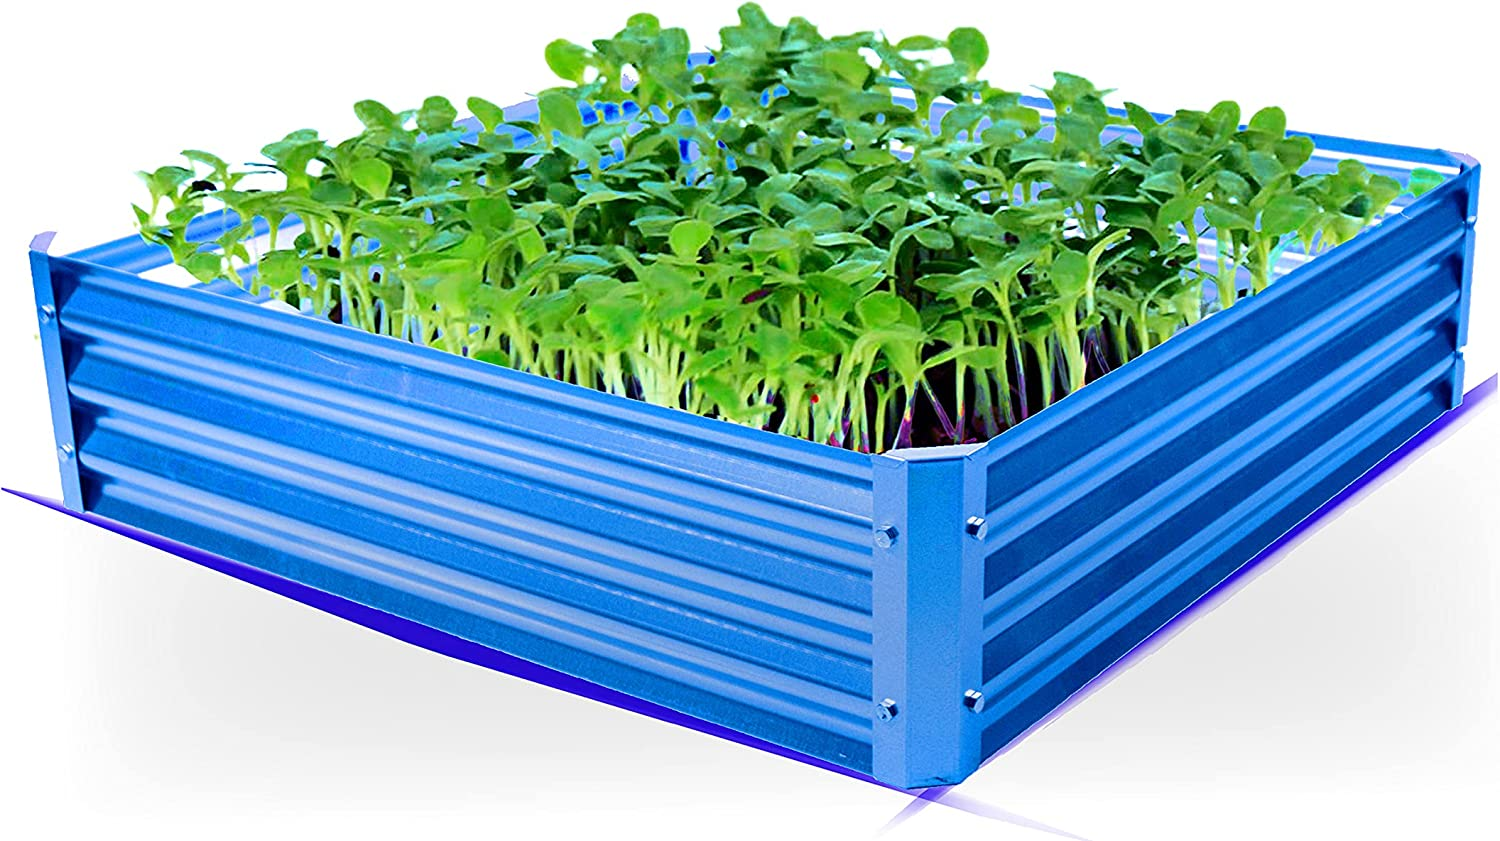 BACKYARD EXPRESSIONS PATIO · HOME · GARDEN 908073 Raised Garden Bed, Turquoise Blue